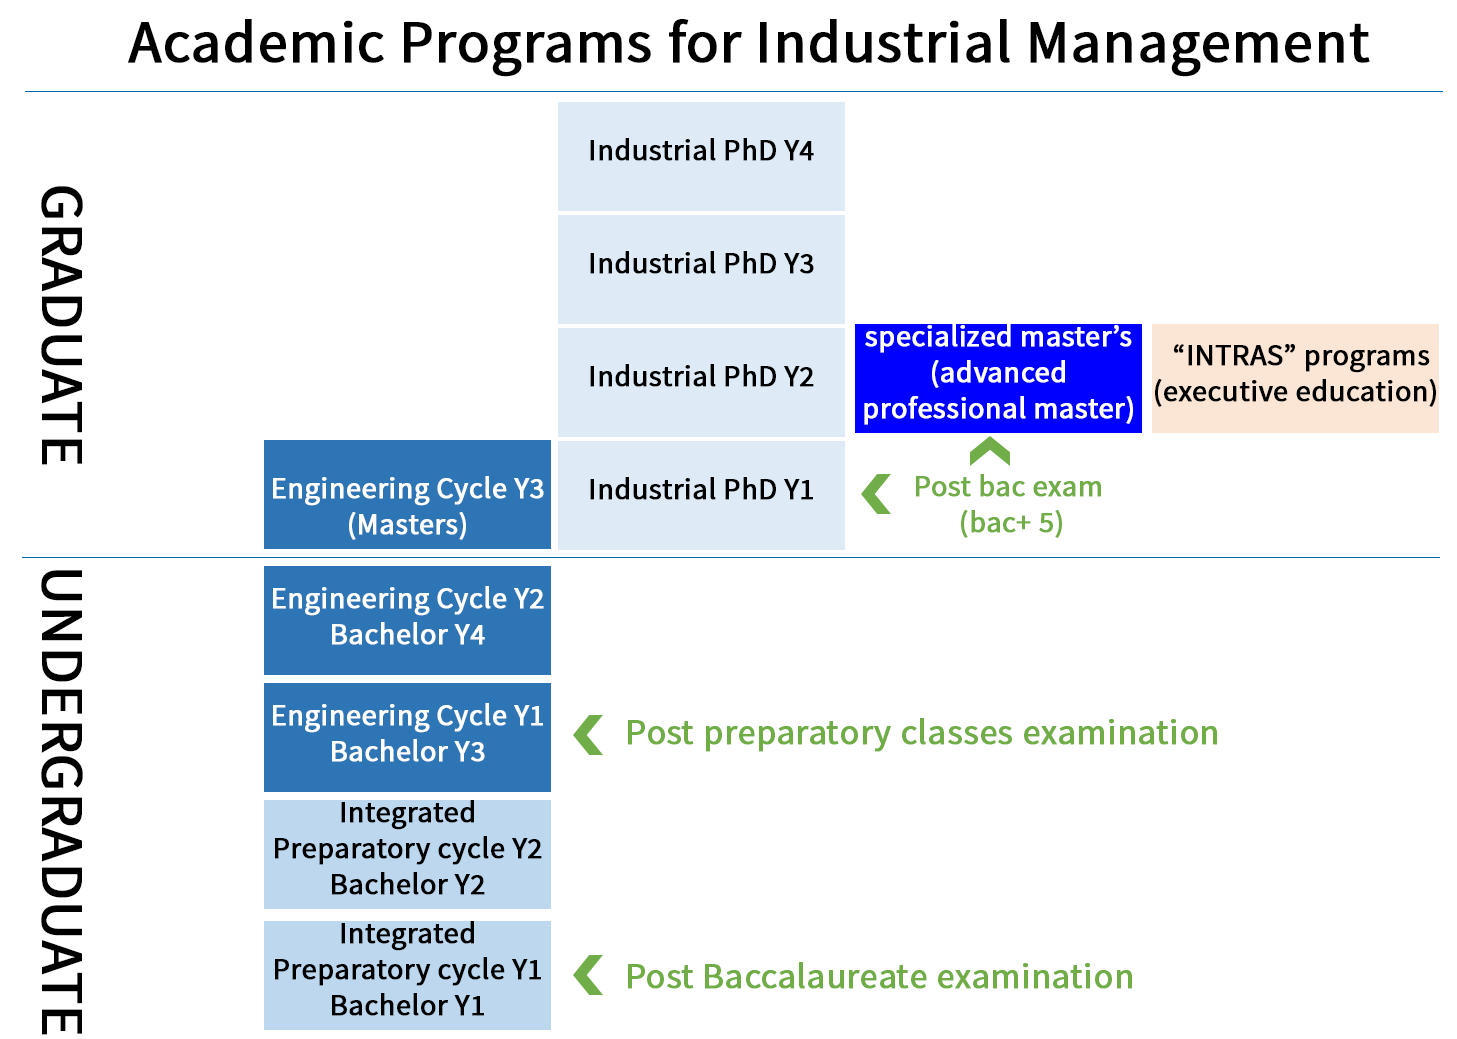 Academic Programs for Industrial Management